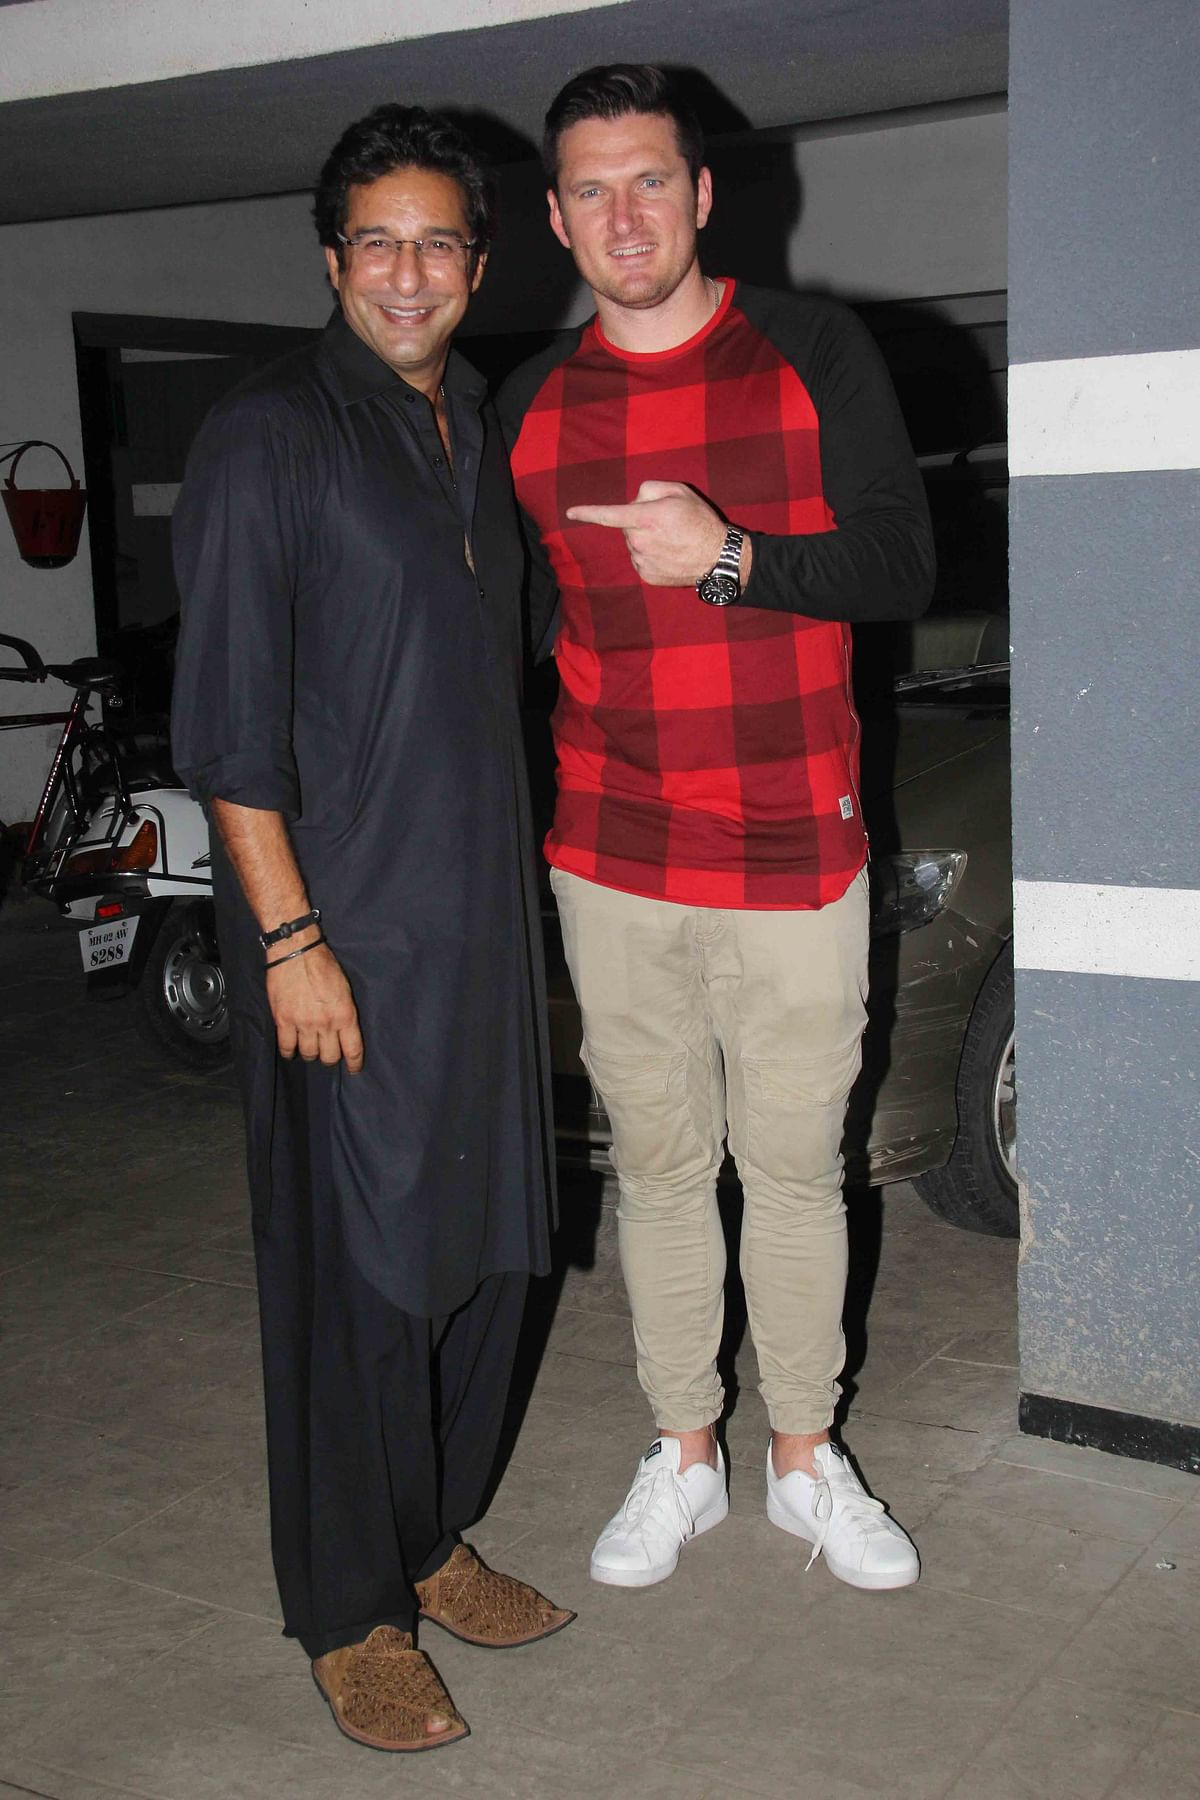 Wasim Akram and Graeme Smith pose for a picture at Sanjay Kapoor's birthday party. (Photo: Yogen Shah)